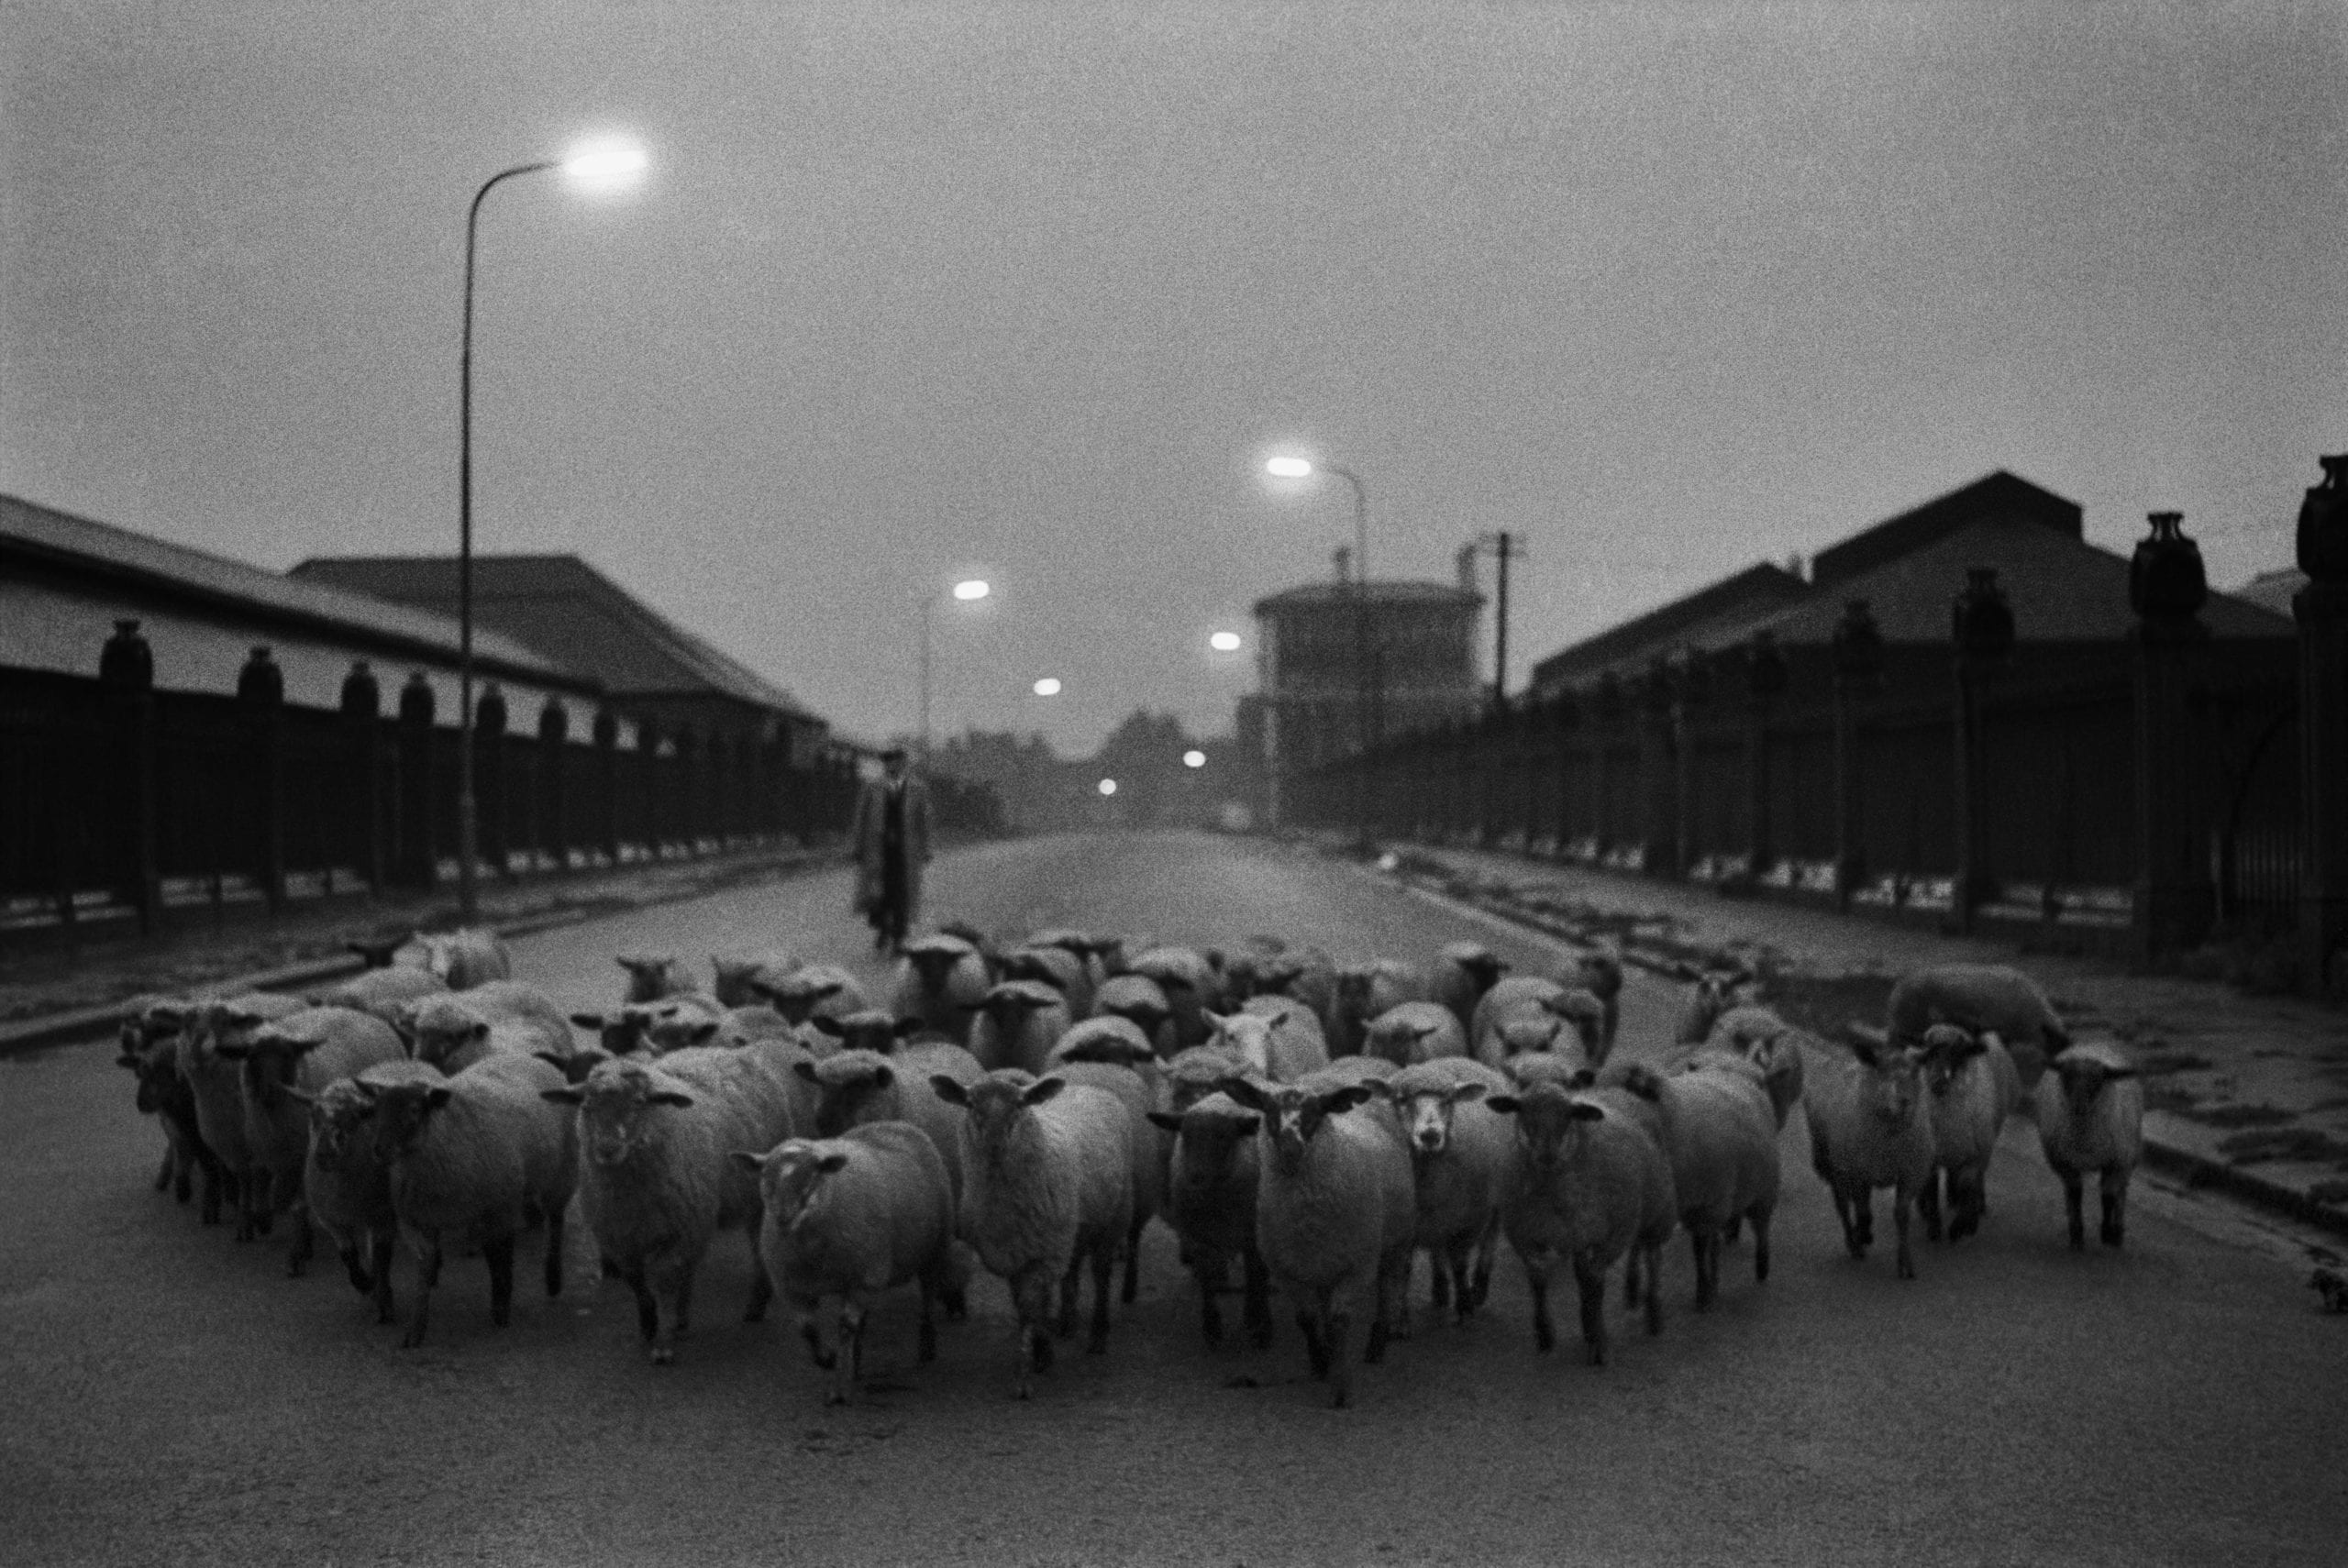 Sheep going to the Slaughter, Early Morning, Near the Caledonian Road, London, 1965 © Don McCullin